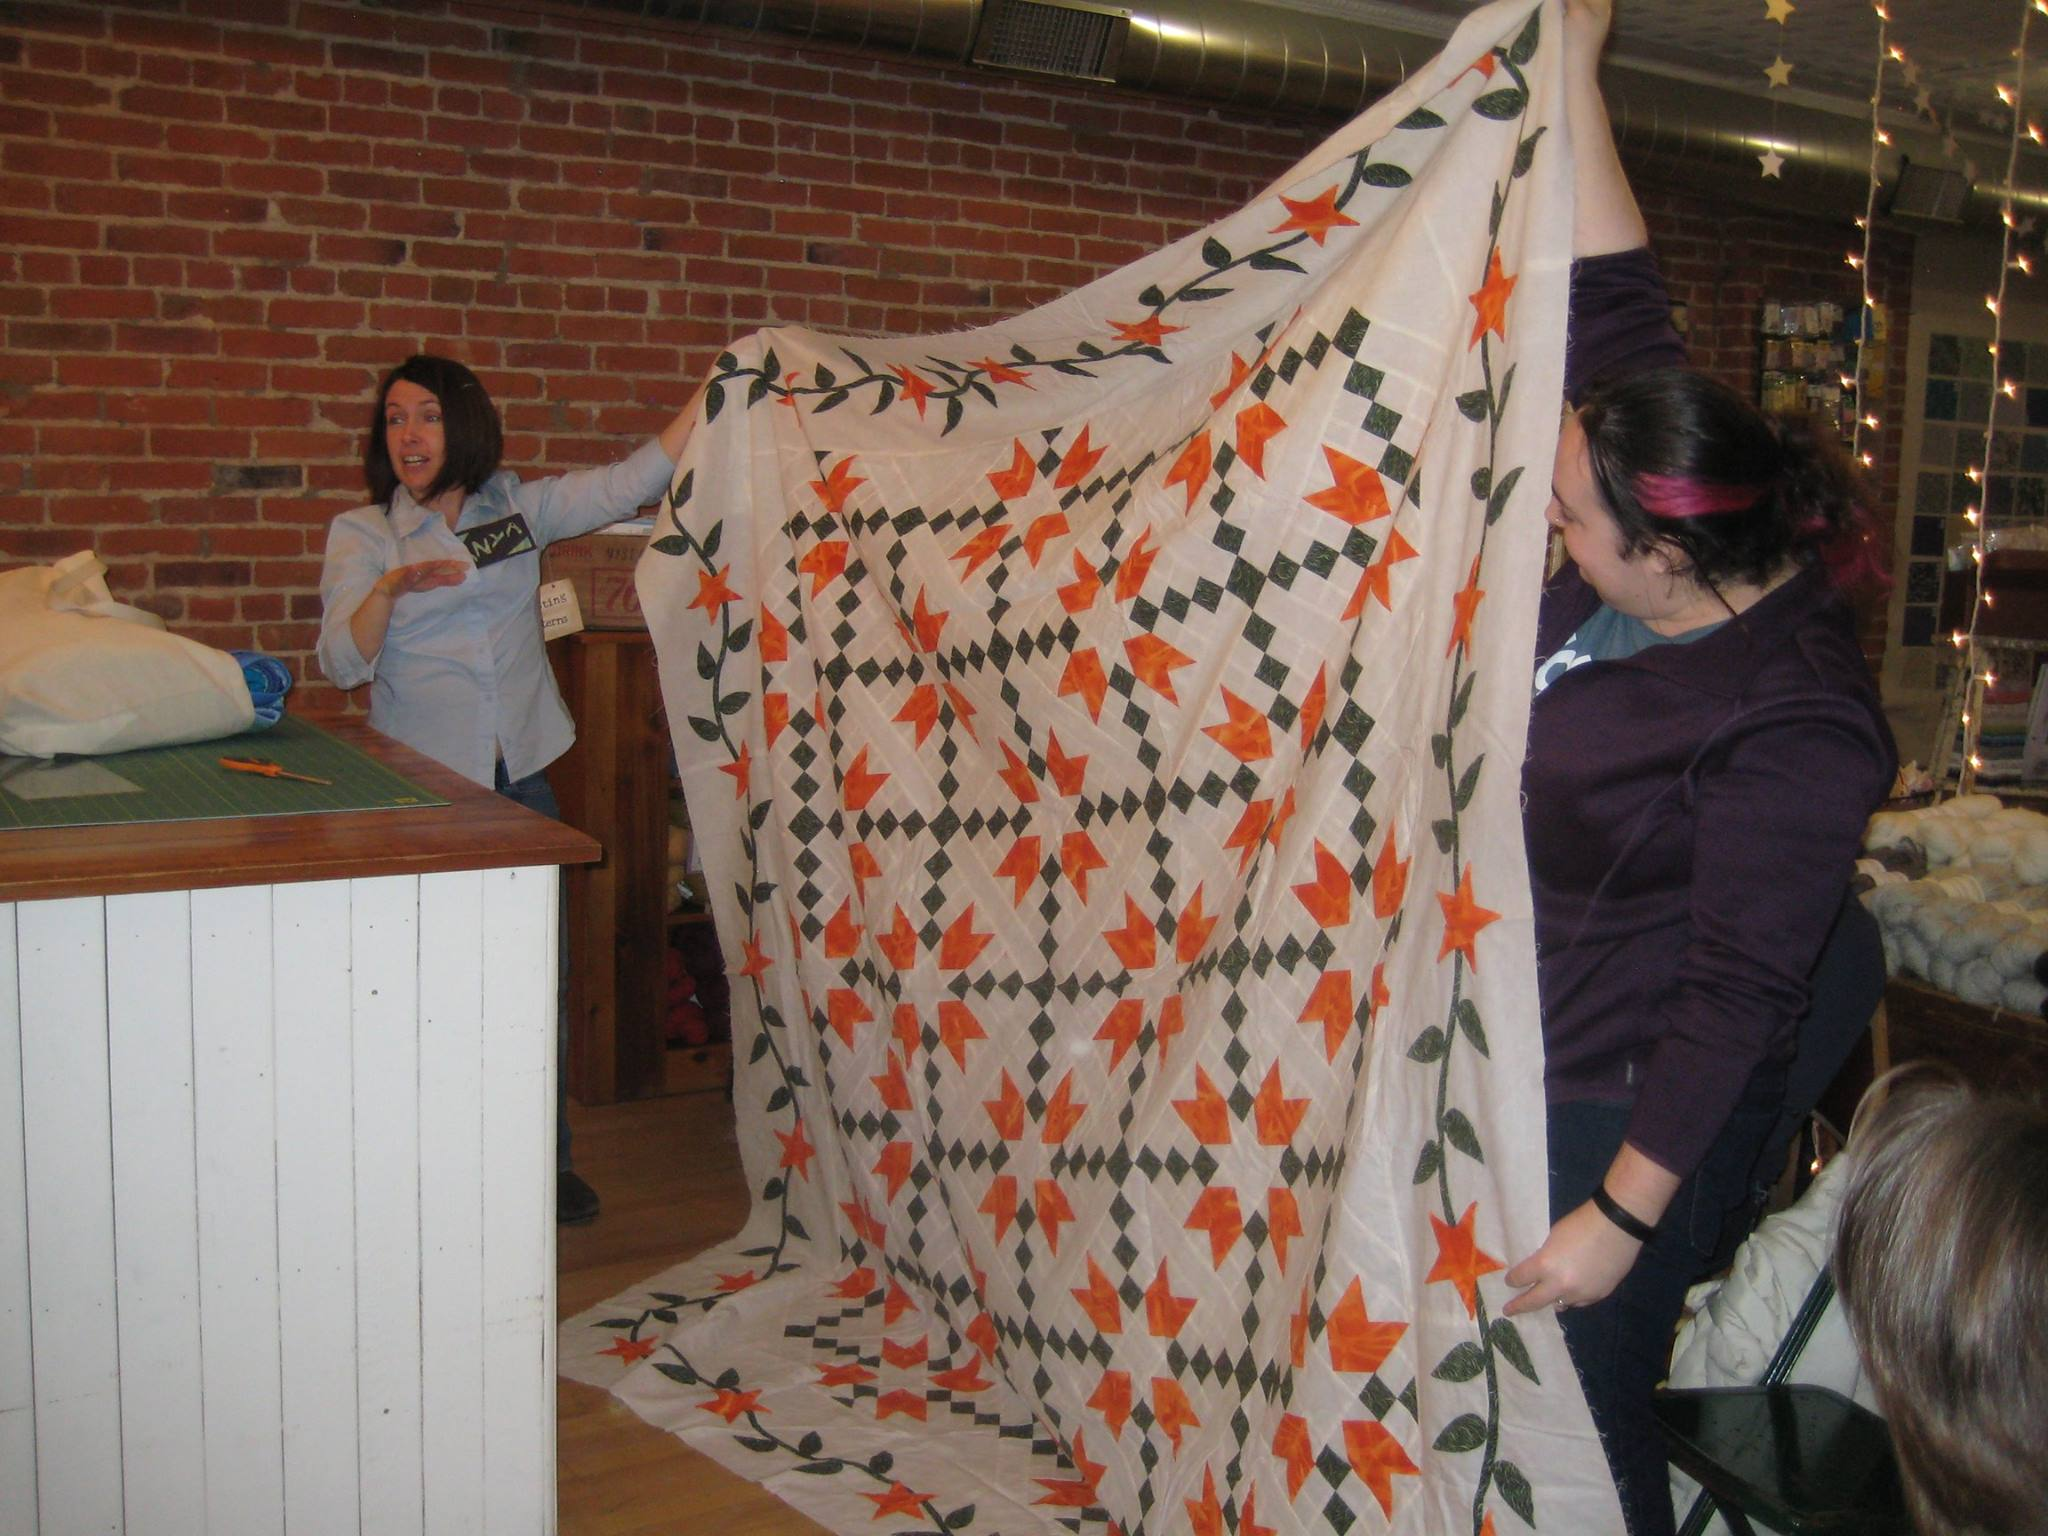 Anya's unfinished quilt top shows a traditional use of bias tape to form a vine in the border.